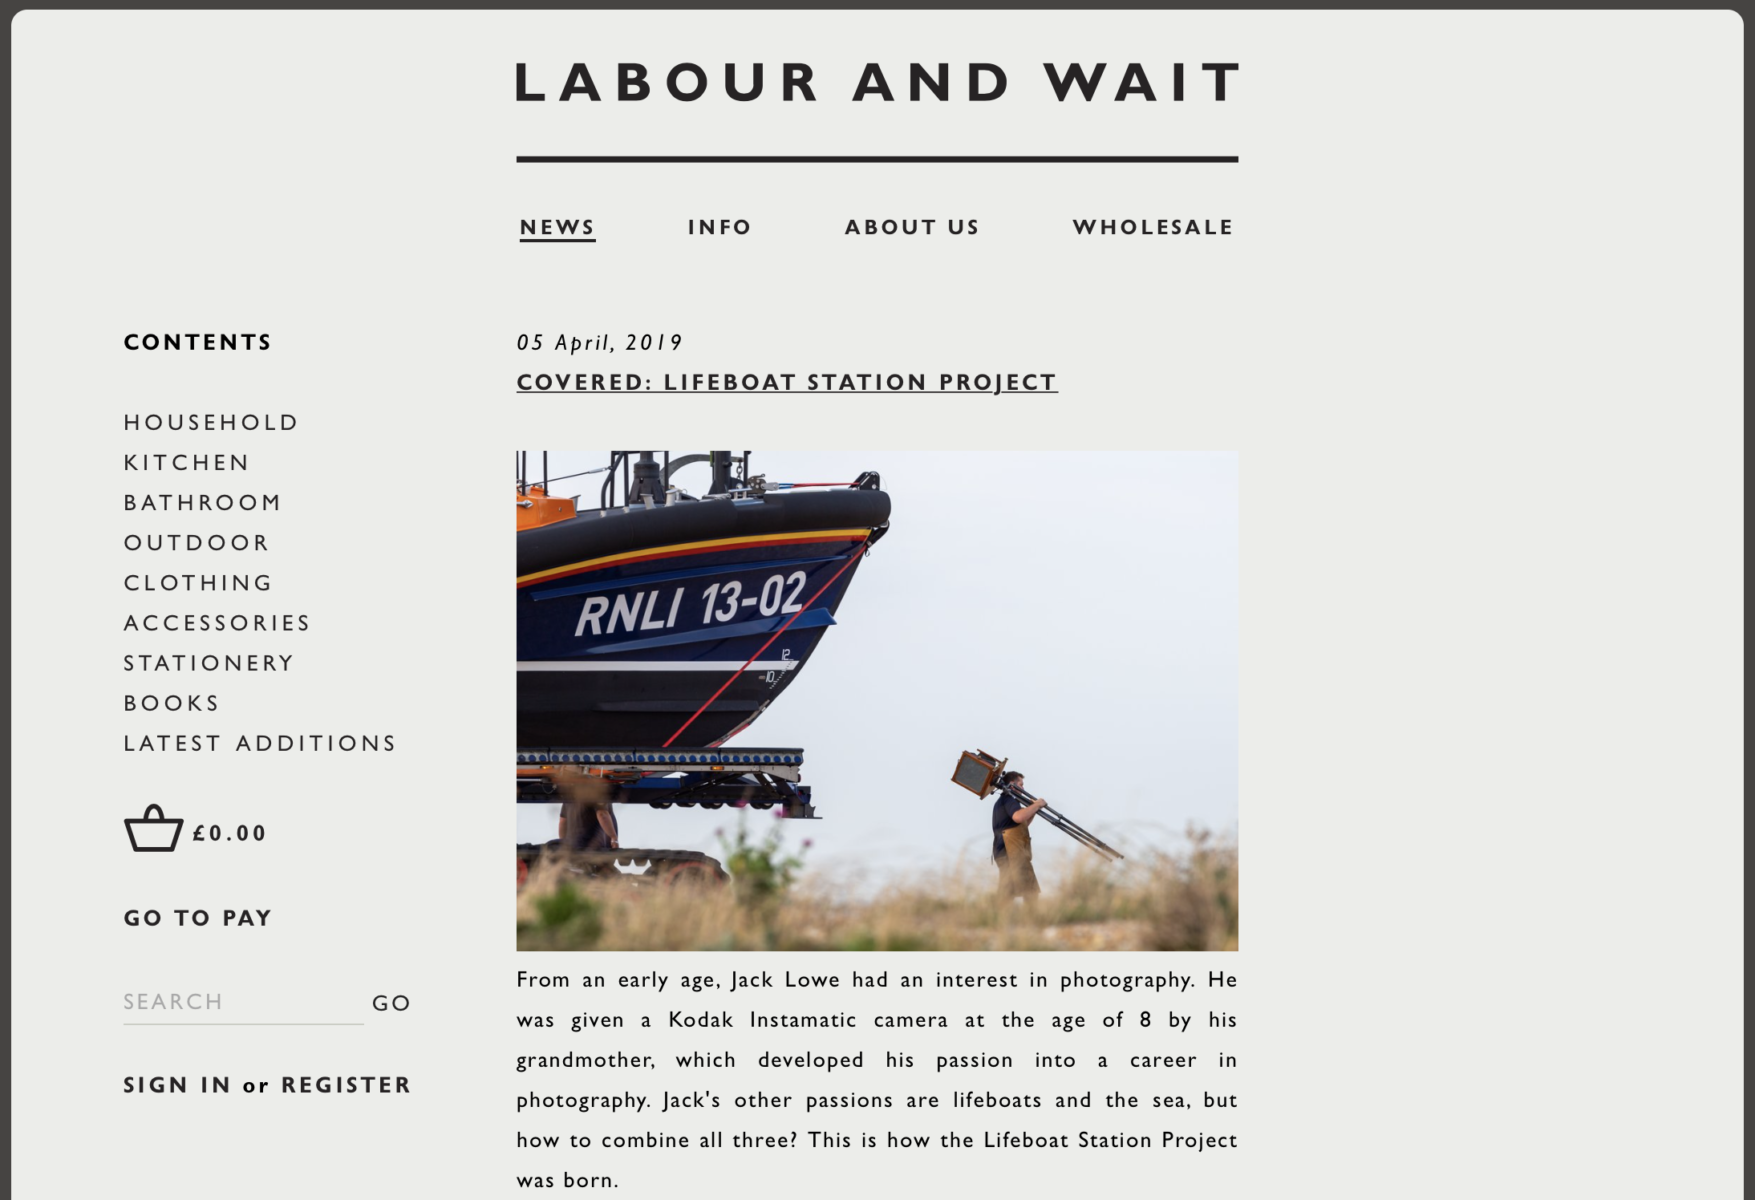 A blog post by Labour and Wait about The Lifeboat Station Project